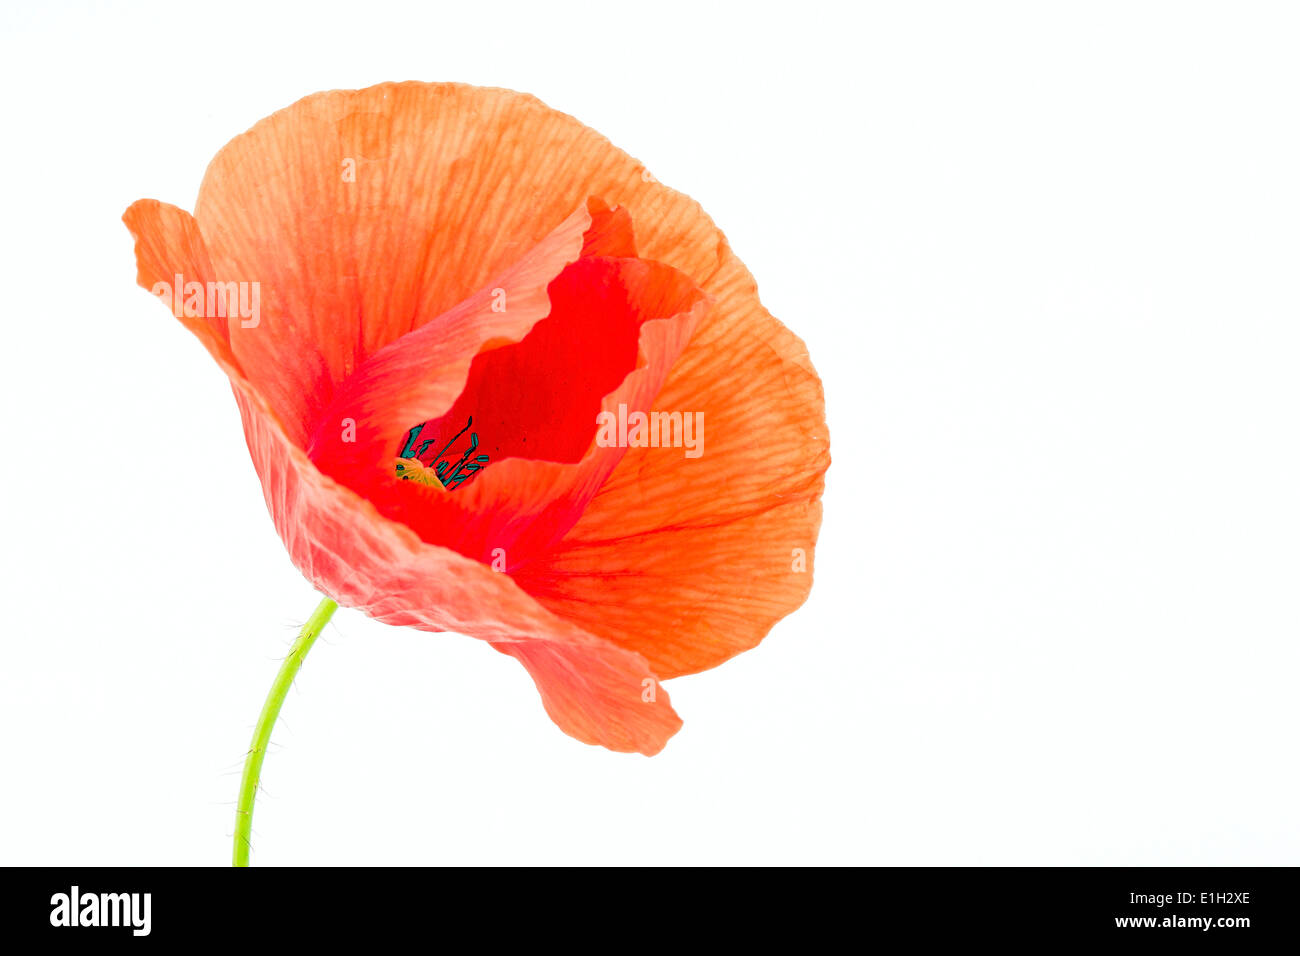 Poppy flower on a white background - Stock Image